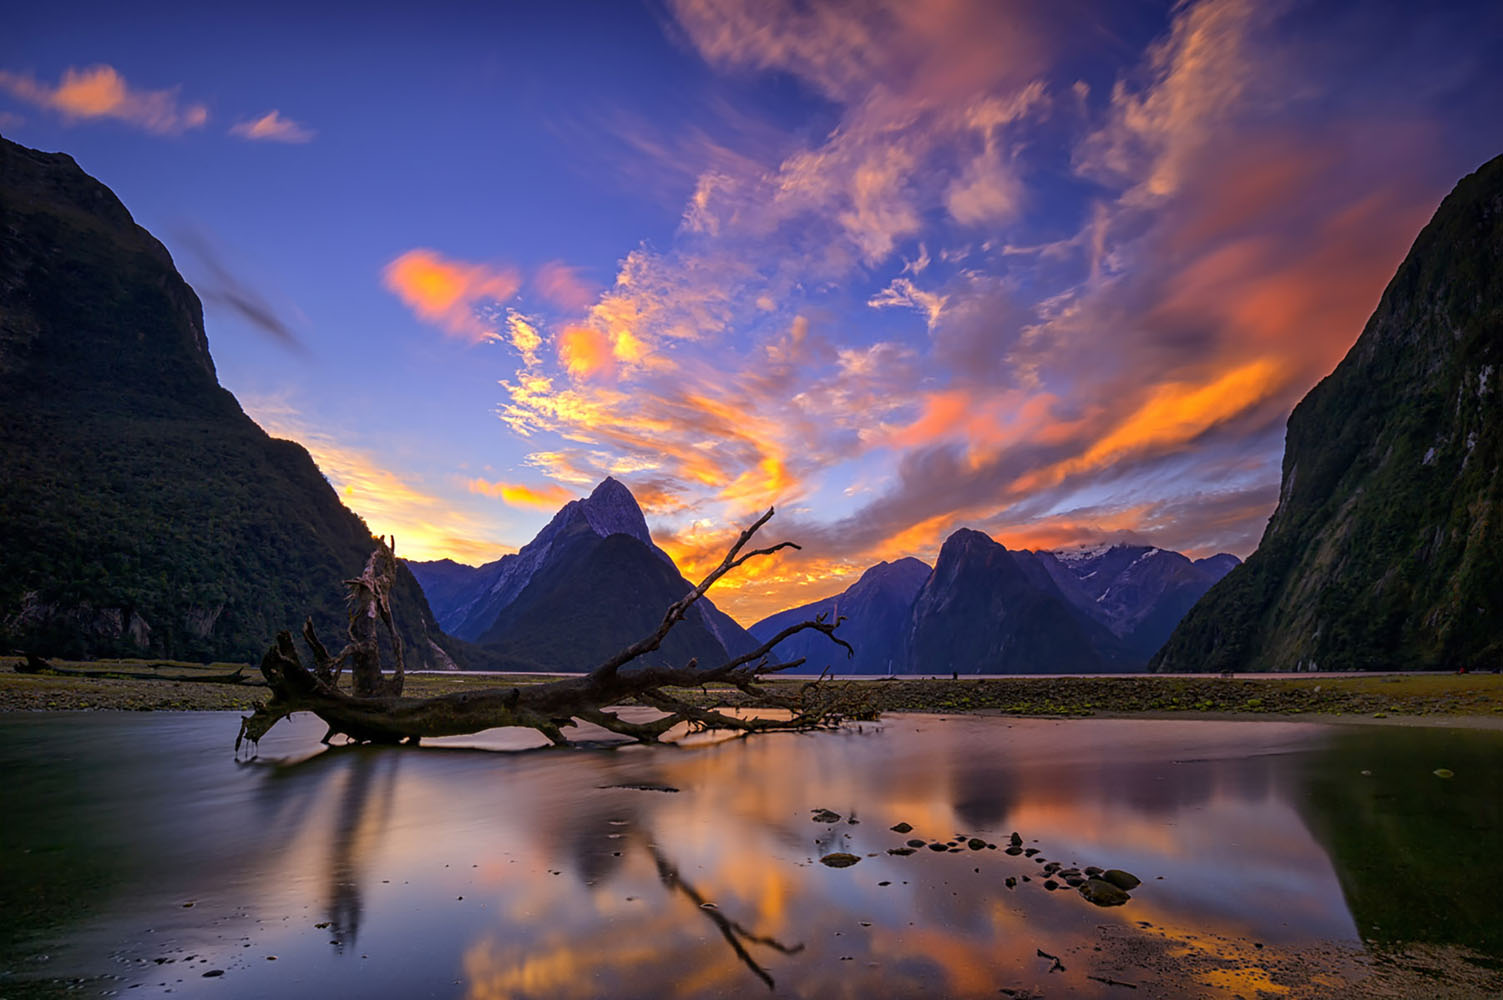 Milford Sounds, New Zealand is one of the most beautiful destinations in the world.